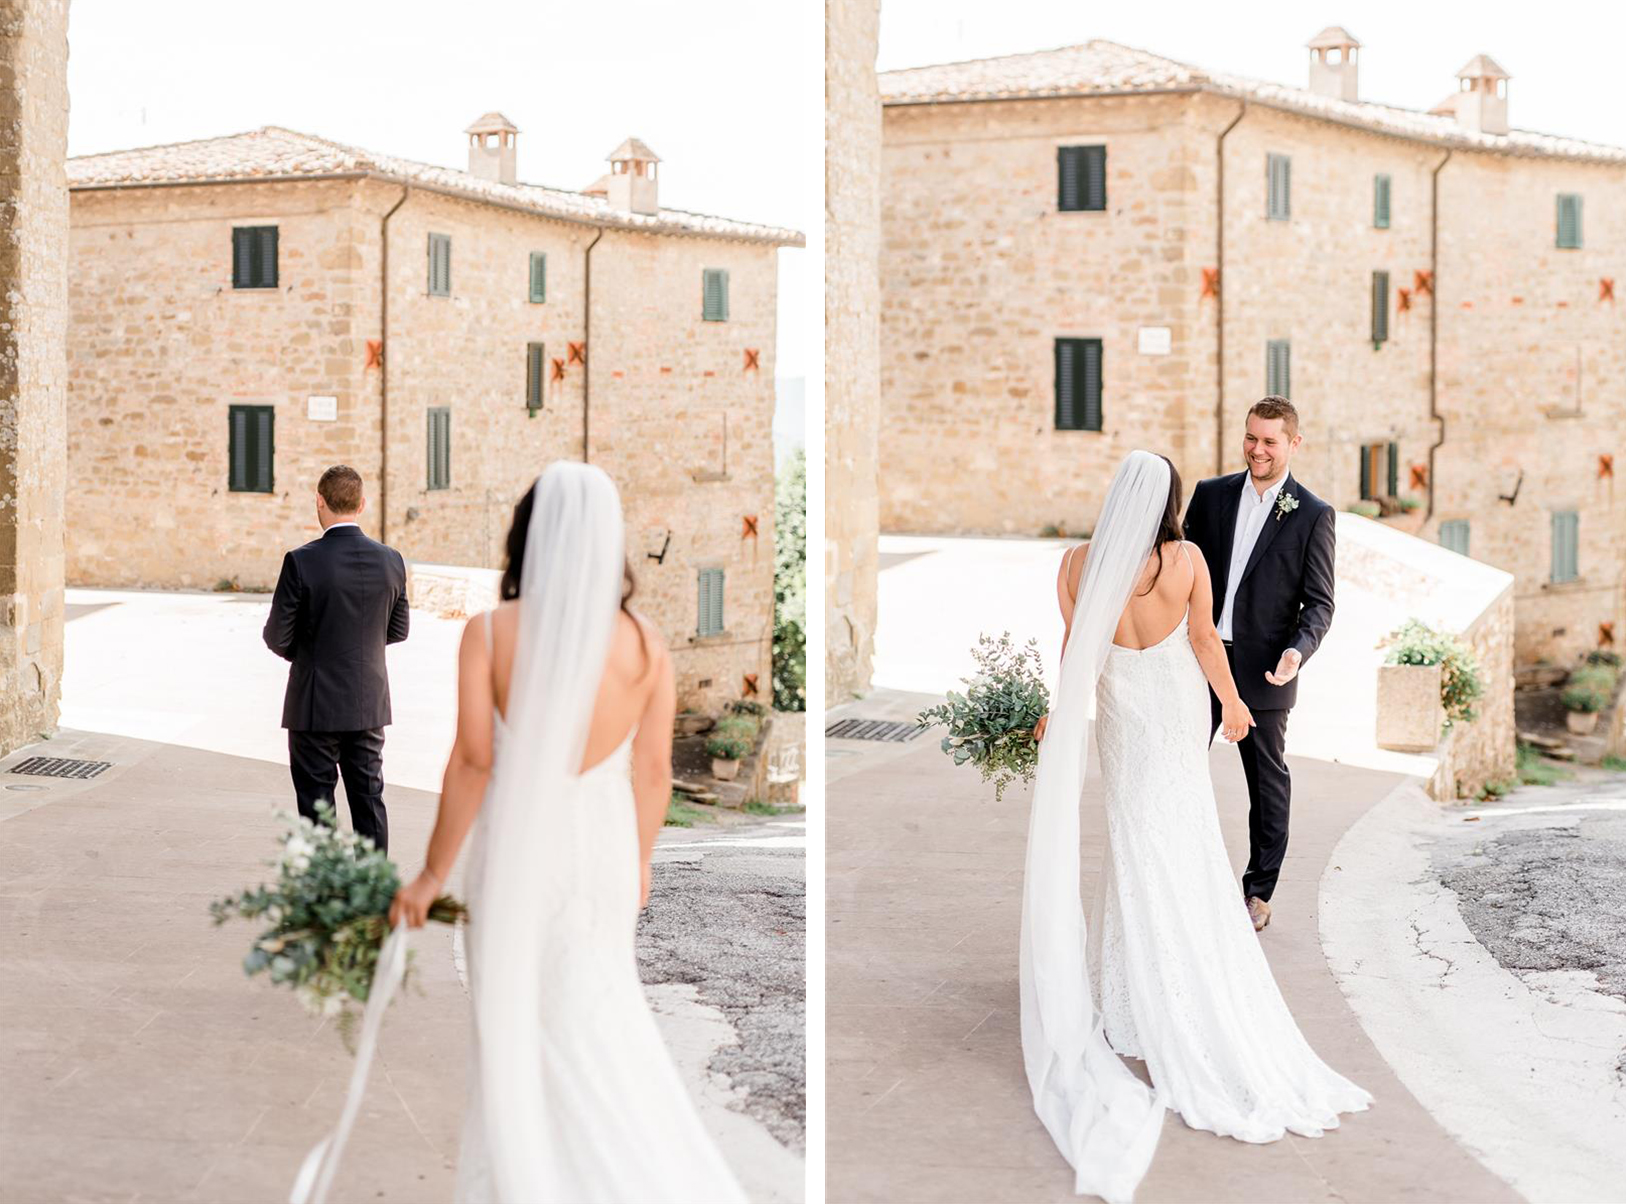 wedding in italy wedding photographer in italy wedding in tuscany wedding venue 17